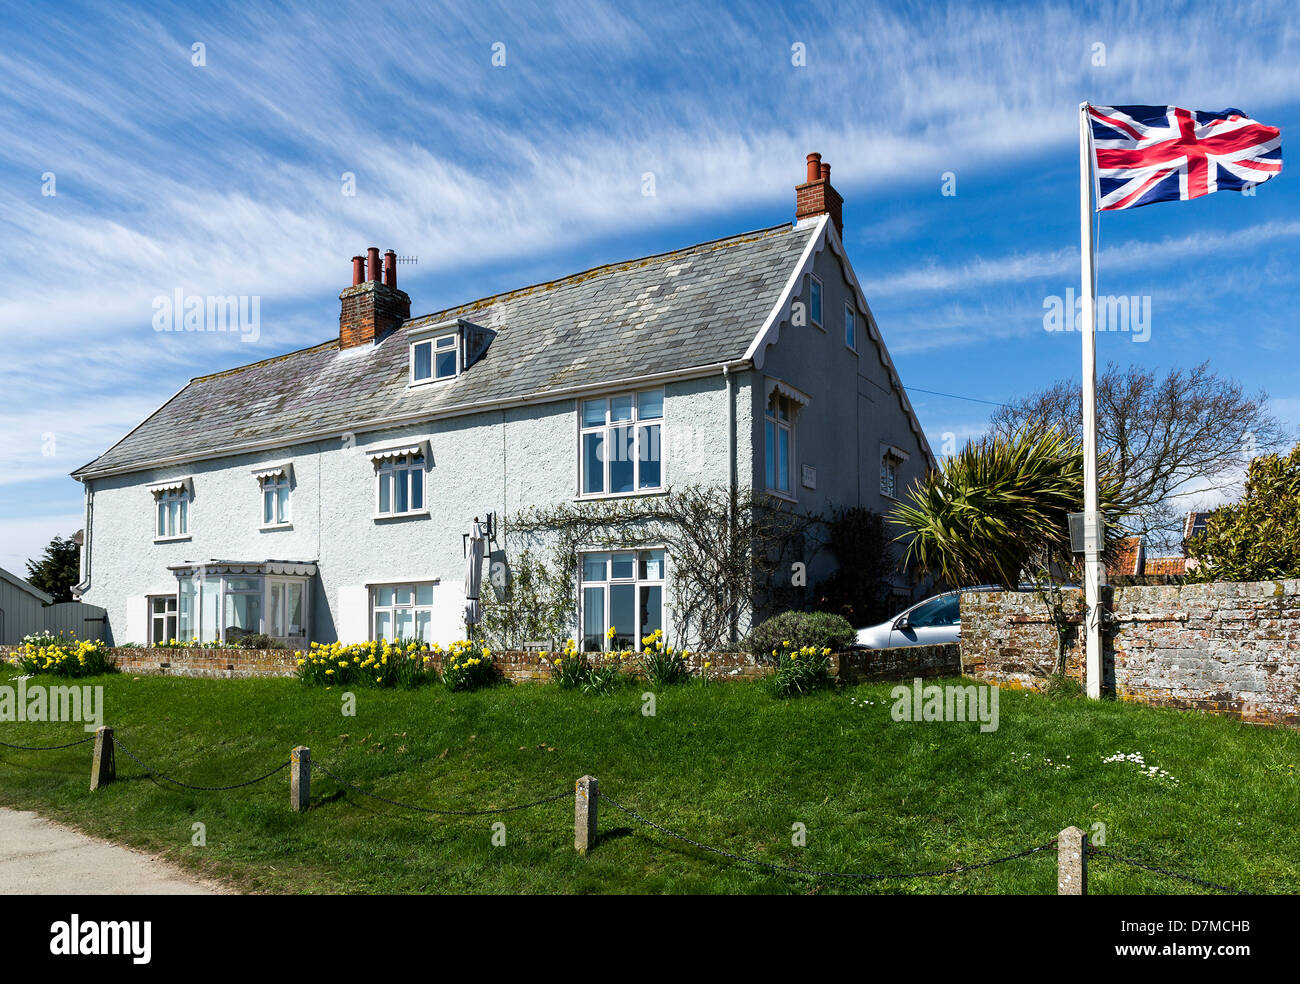 Houses in Orford in Suffolk. - Stock Image